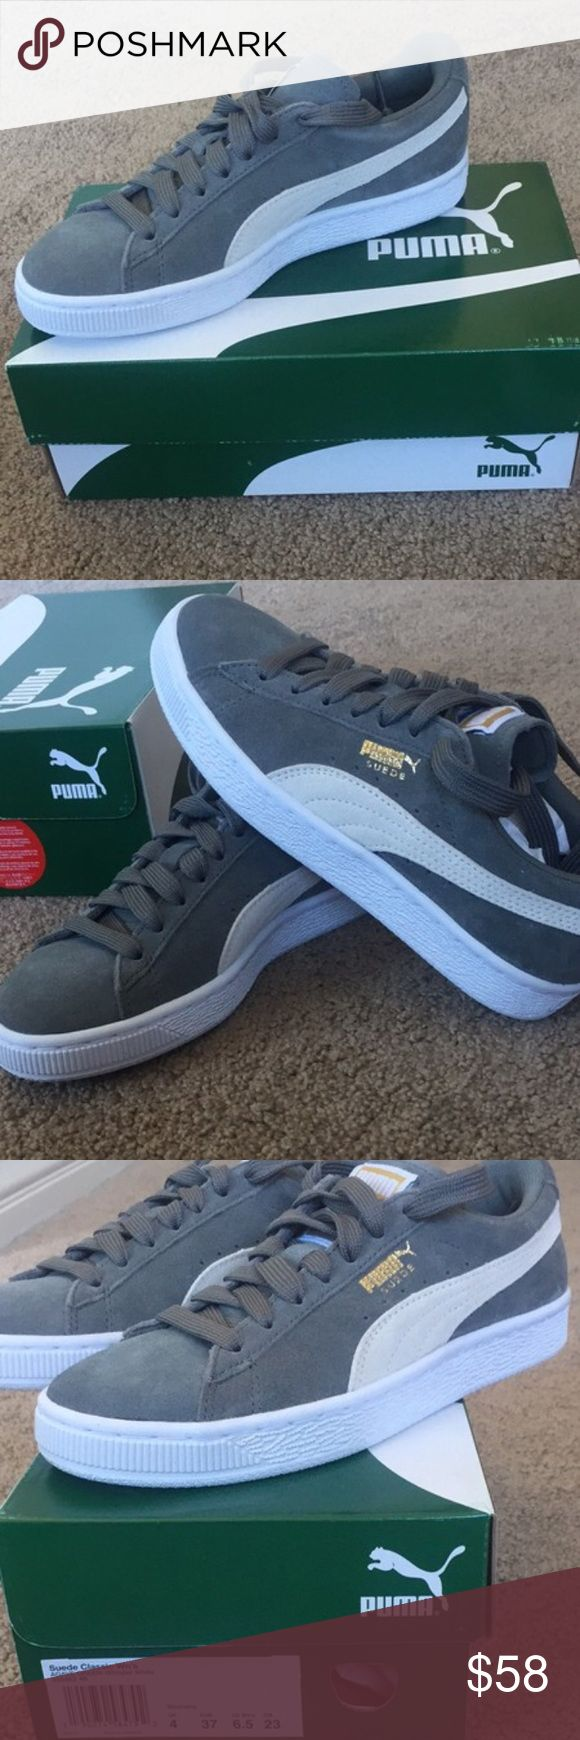 Grey suede puma sneakers Brand new, never worn classic grey suede pumas. Too small for me Puma Shoes Sneakers